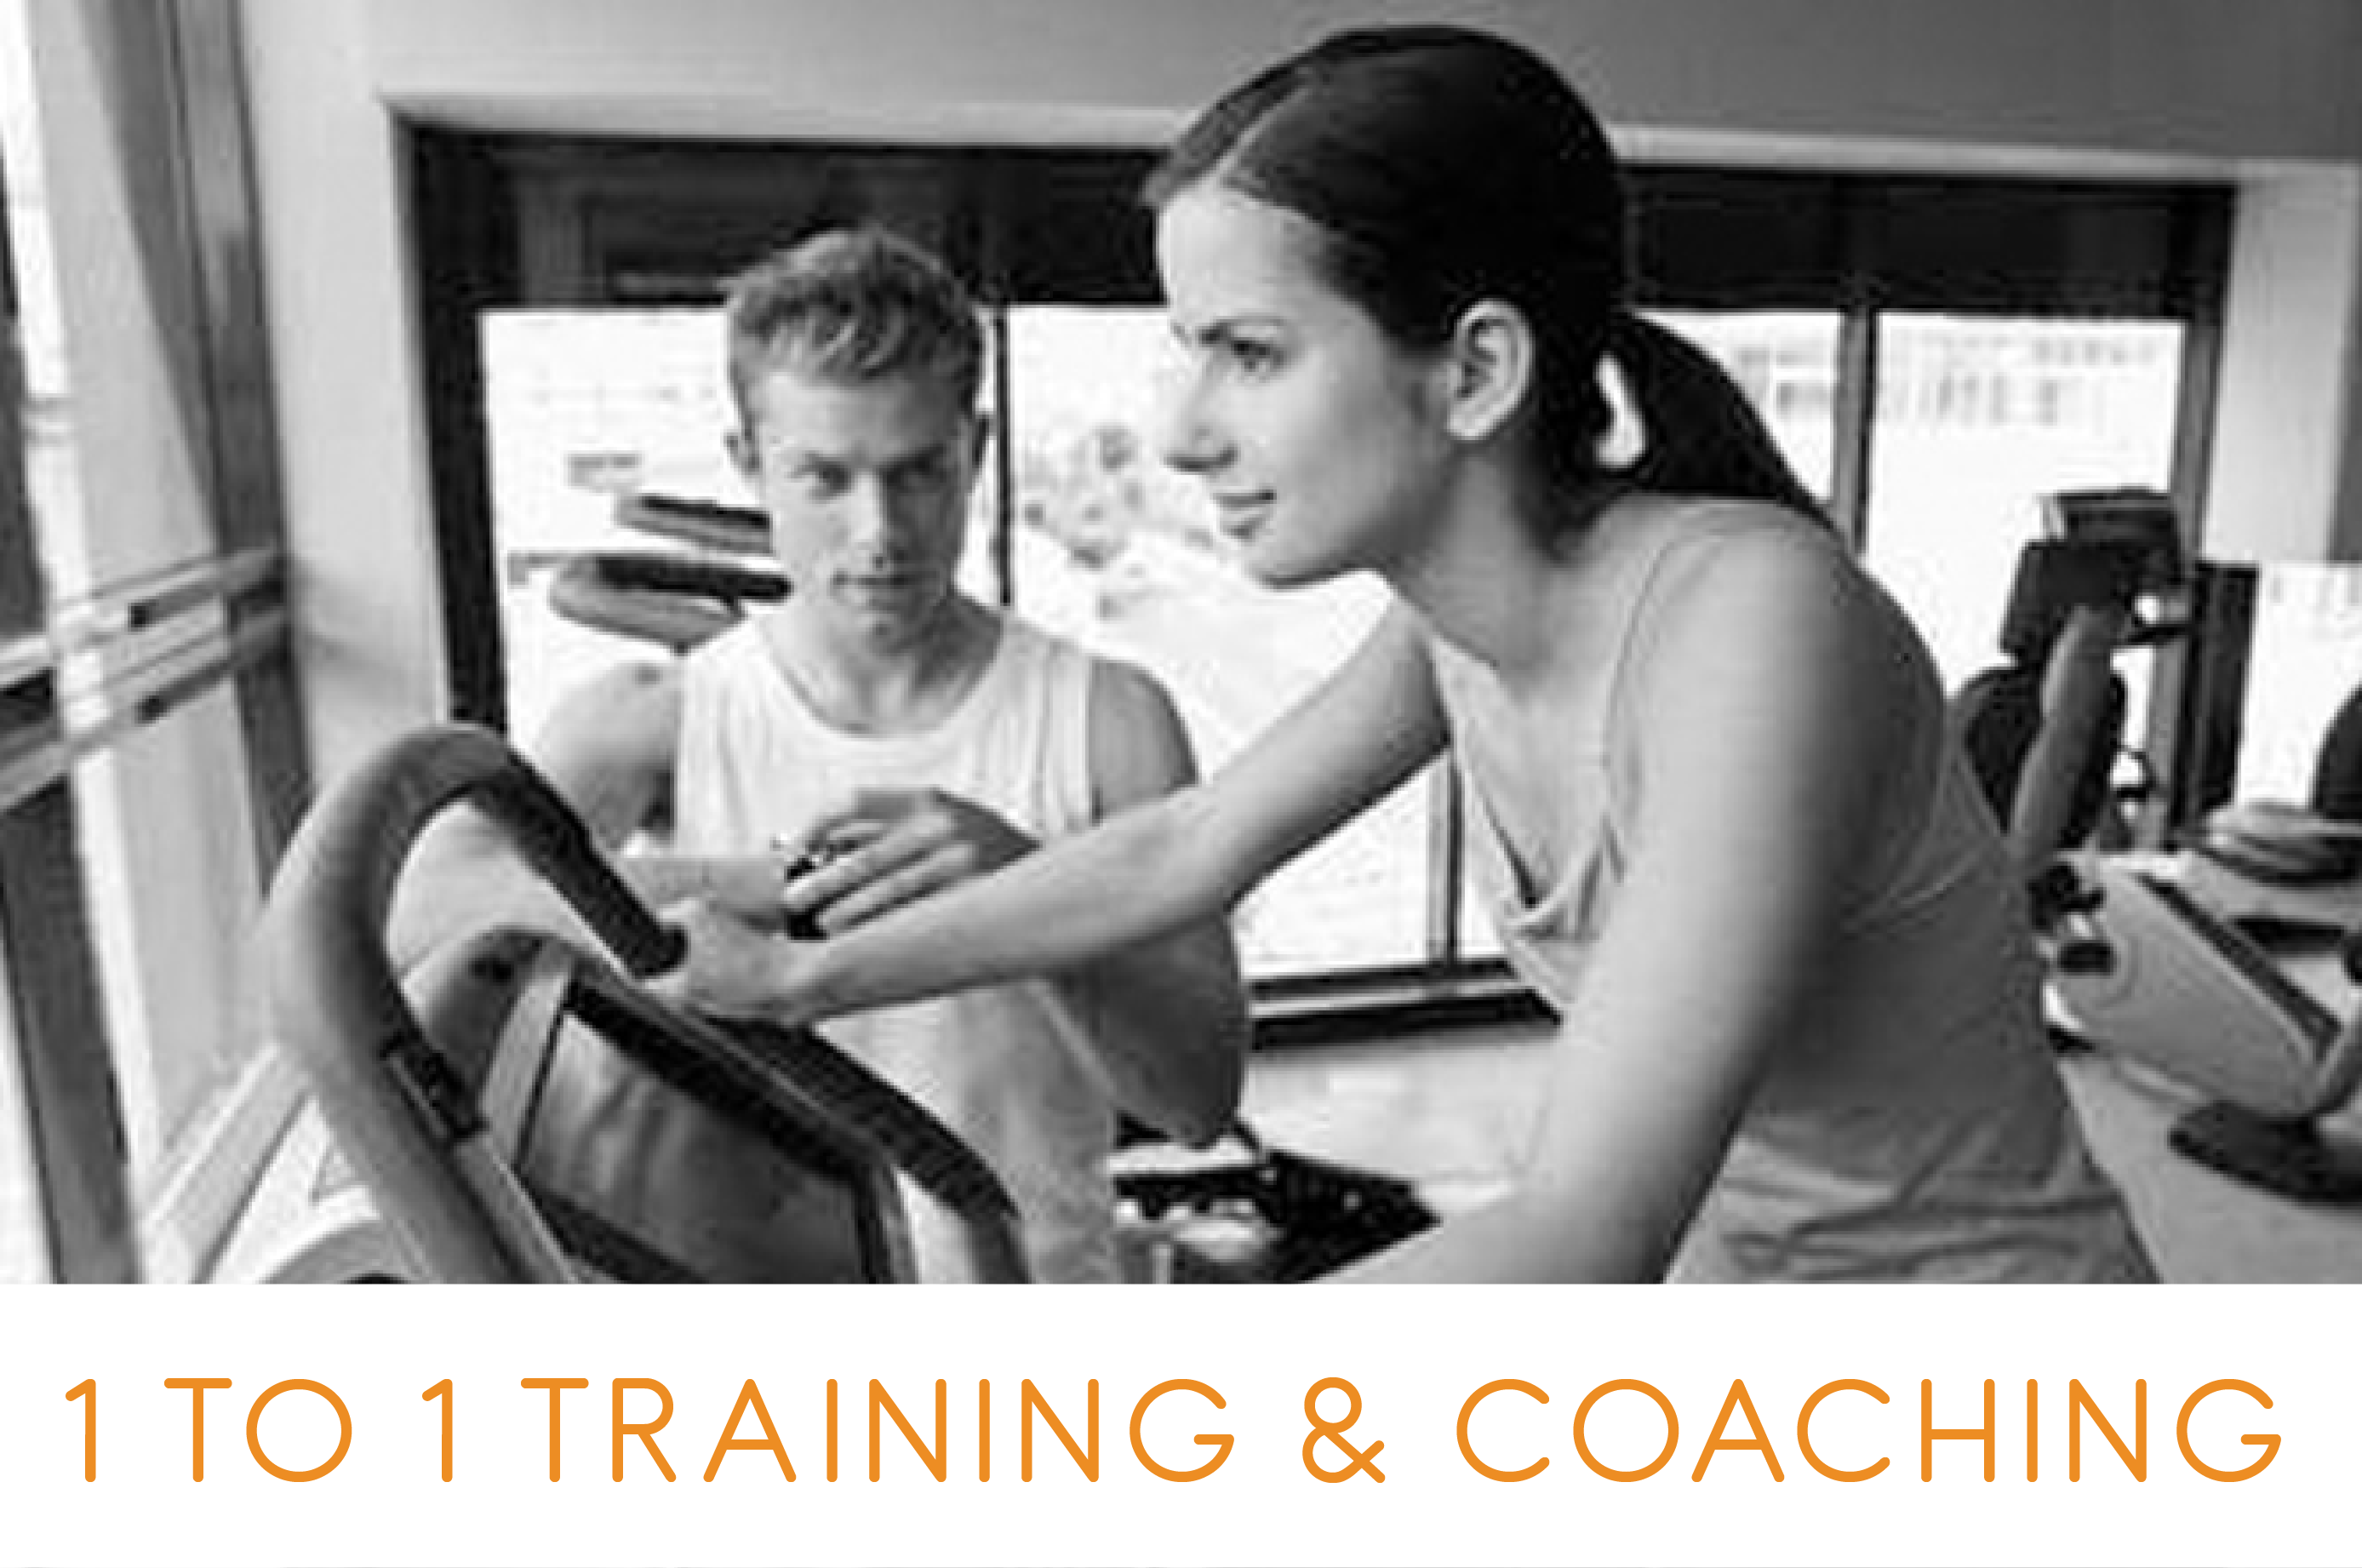 1 to 1 Training & Coaching